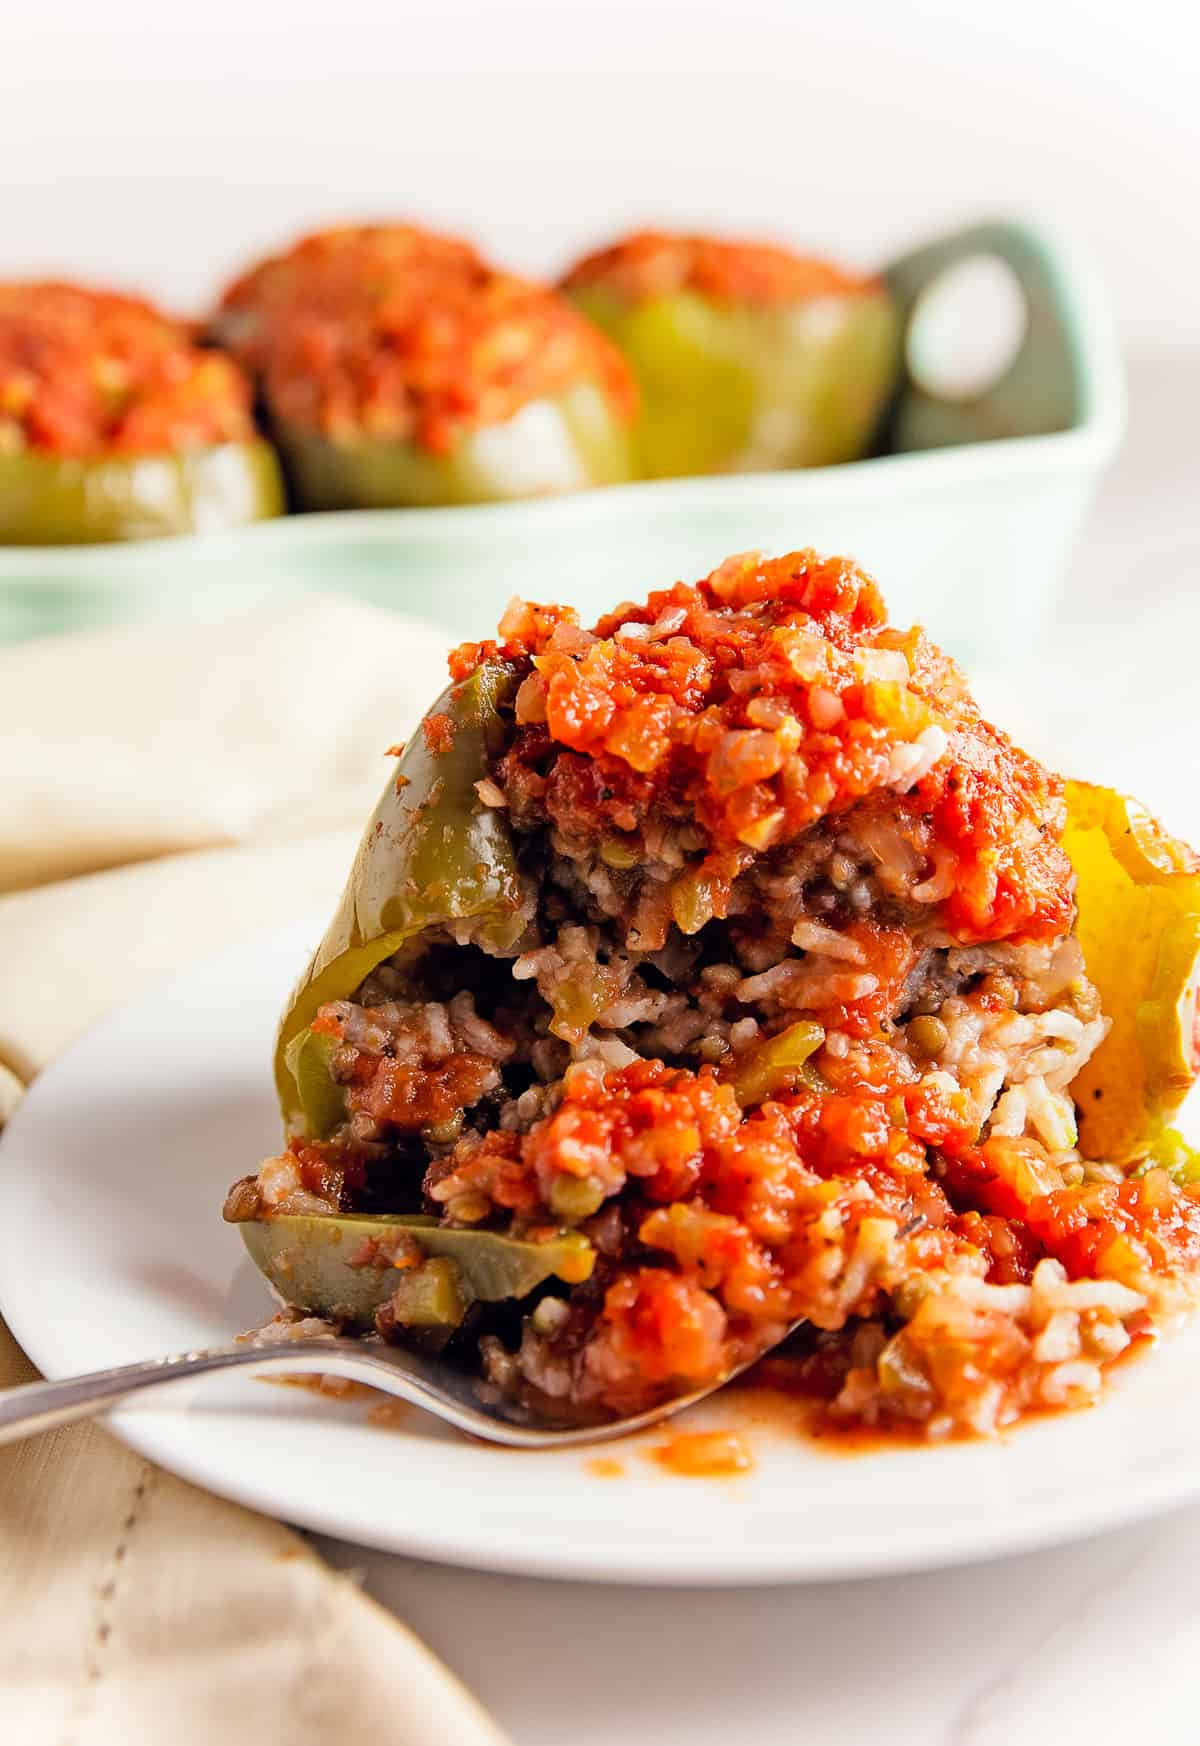 old fashioned stuffed peppers, stuffed peppers, peppers, bell peppers, recipe, stuffed pepper recipe, vegan, vegan recipe, whole food plant based recipe, whole food plant based, vegetarian, vegetarian recipe, gluten free, gluten free recipe, vegan dinner, vegan meals, vegetarian dinner, vegetarian meal, whole food plant based dinner, whole food plant based meal, gluten free dinner, gluten free meal, healthy, oil free, no oil, tomatoes, rice, lentils, mashed potatoes, red gravy, tomato gravy, entertaining, wfpb, dairy free, no dairy, traditional, American, classic, delicious, the best, winter, fall, spring, summer